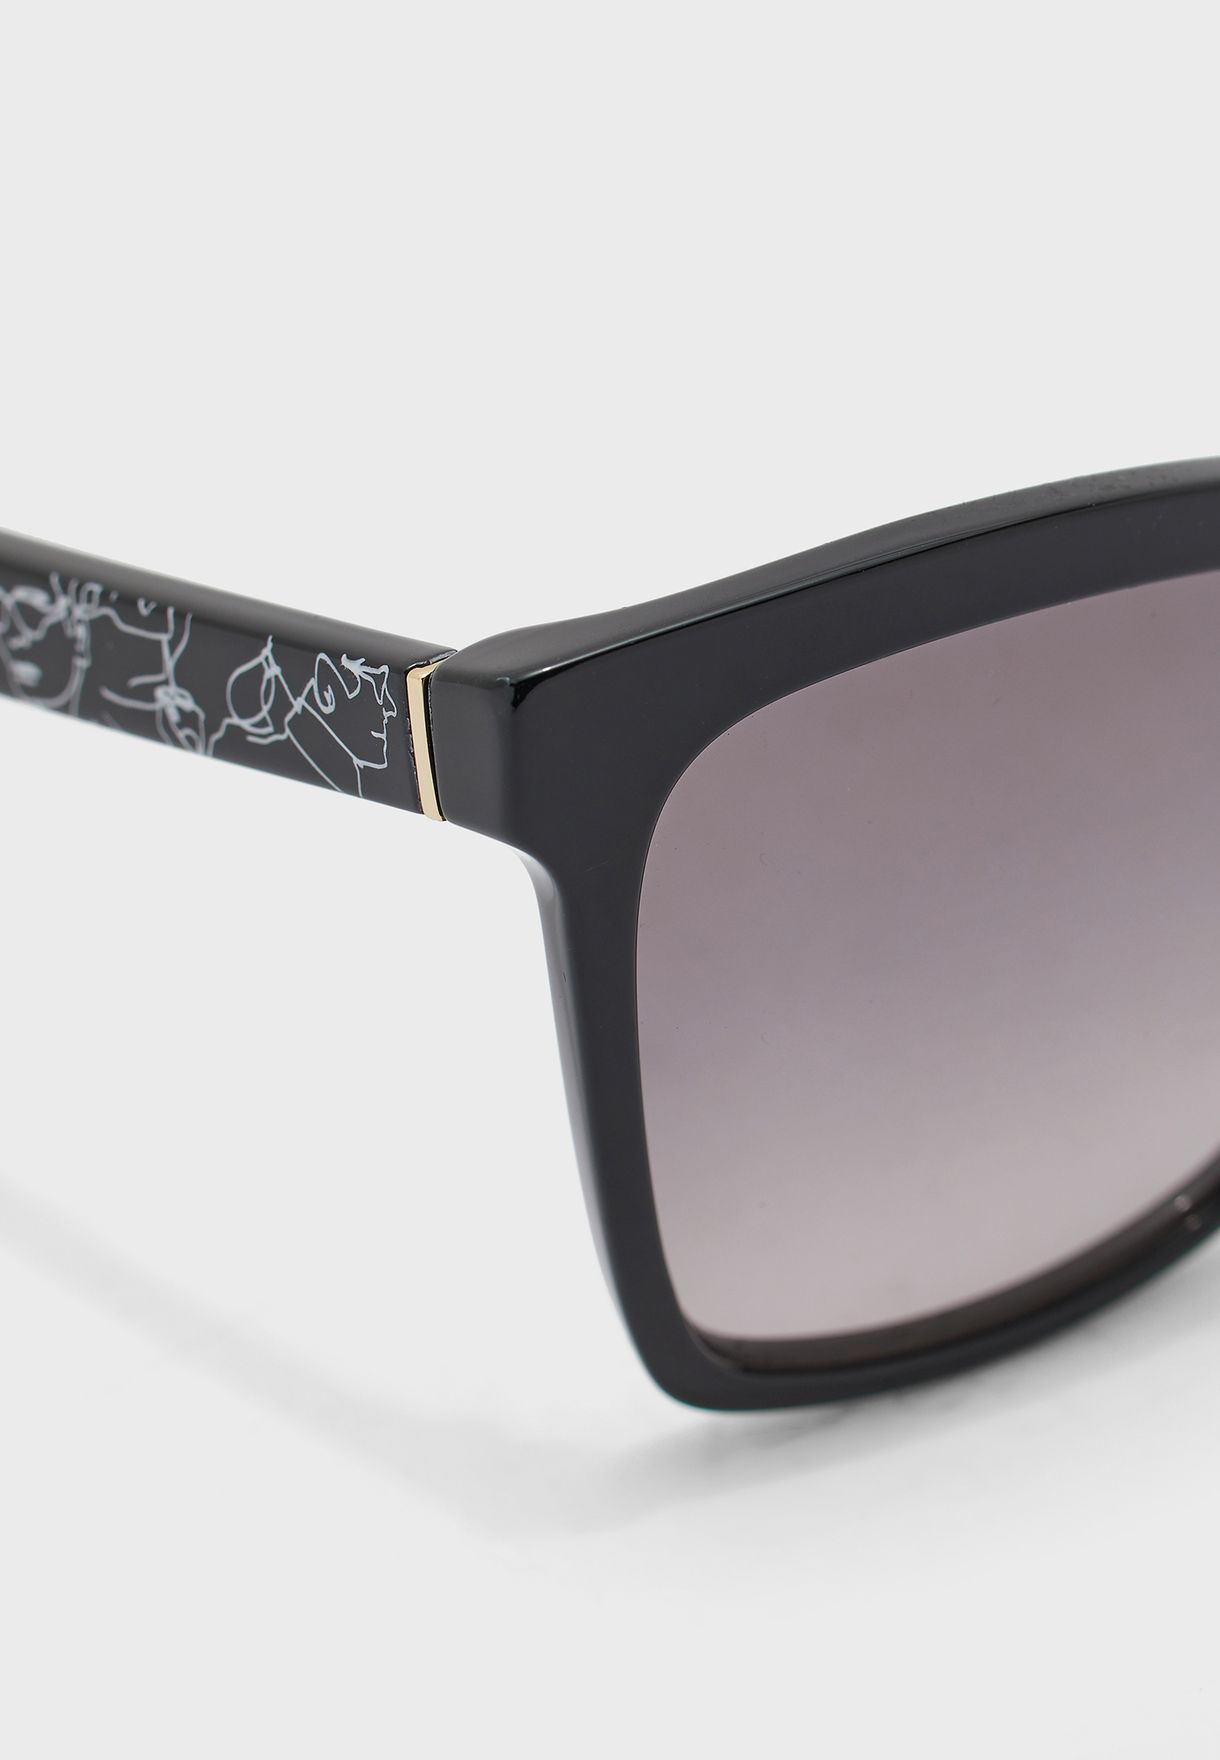 Kl938S Square Sunglasses